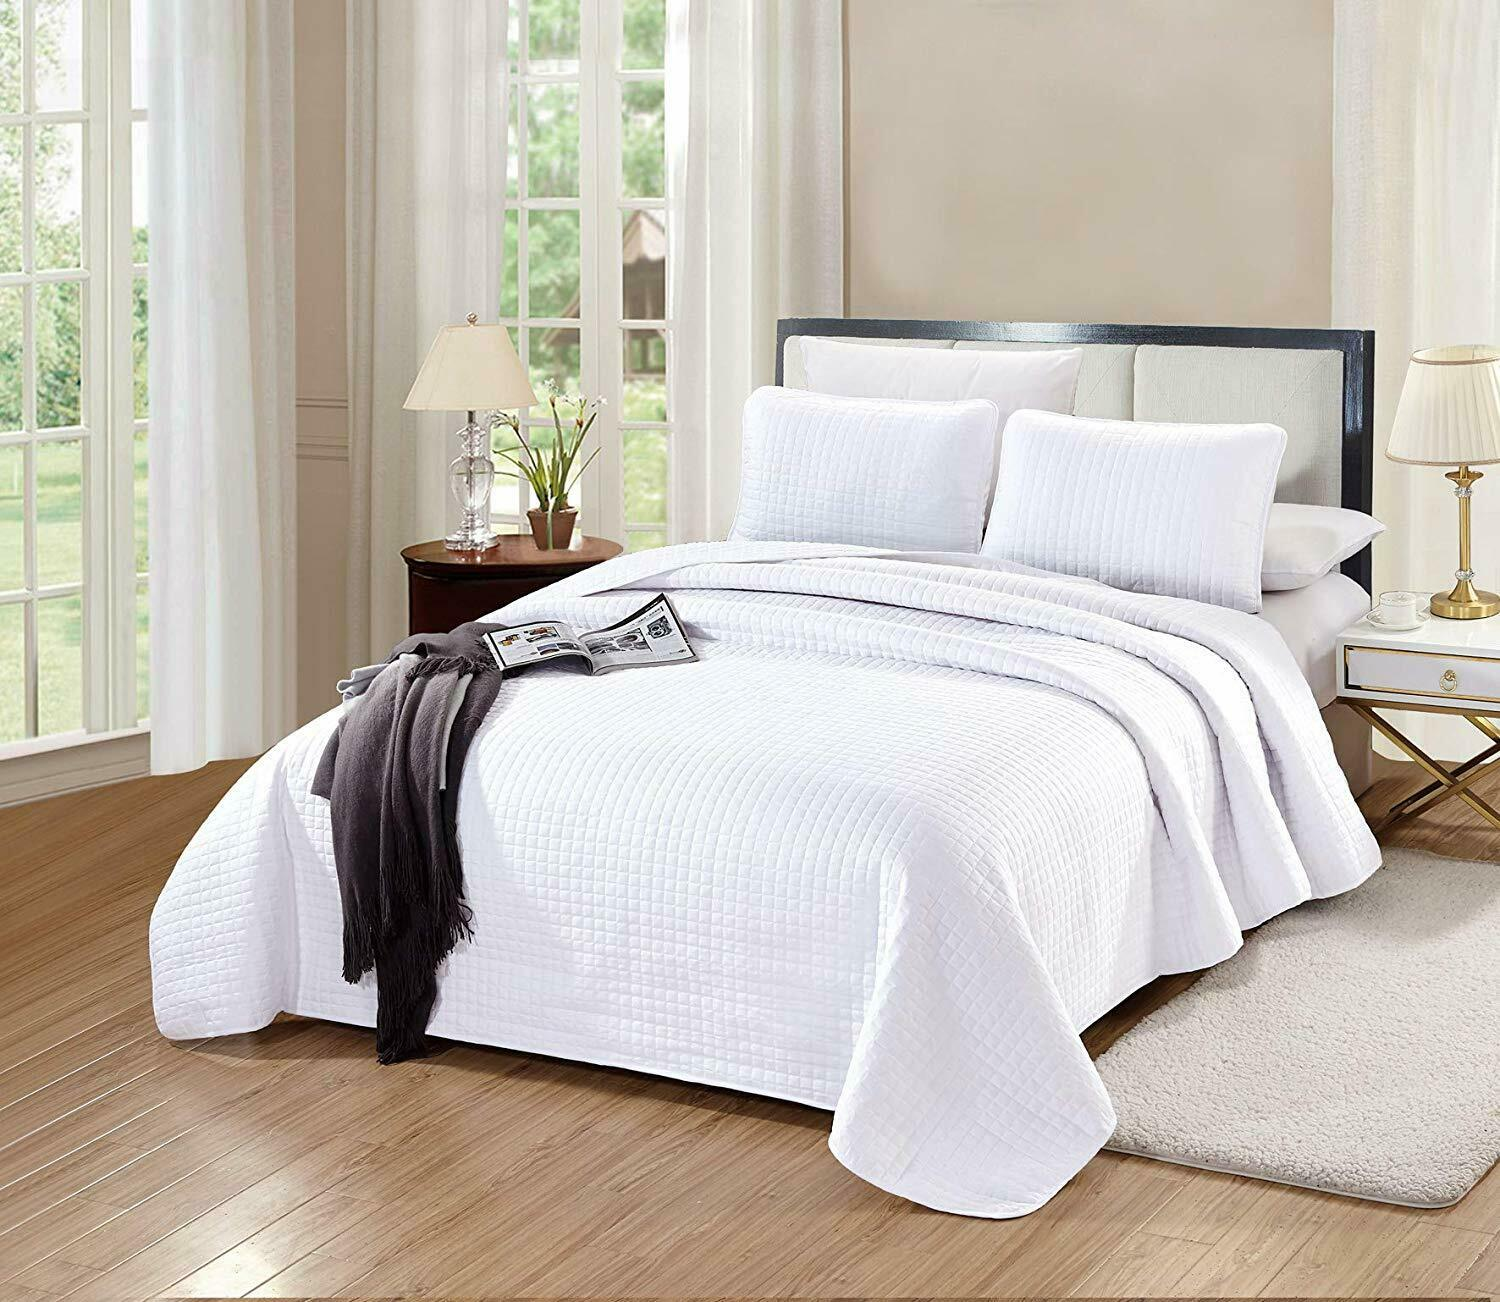 3 PC Florence Quilt Set Solid White Microfiber KING Size Coverlet Bedspread